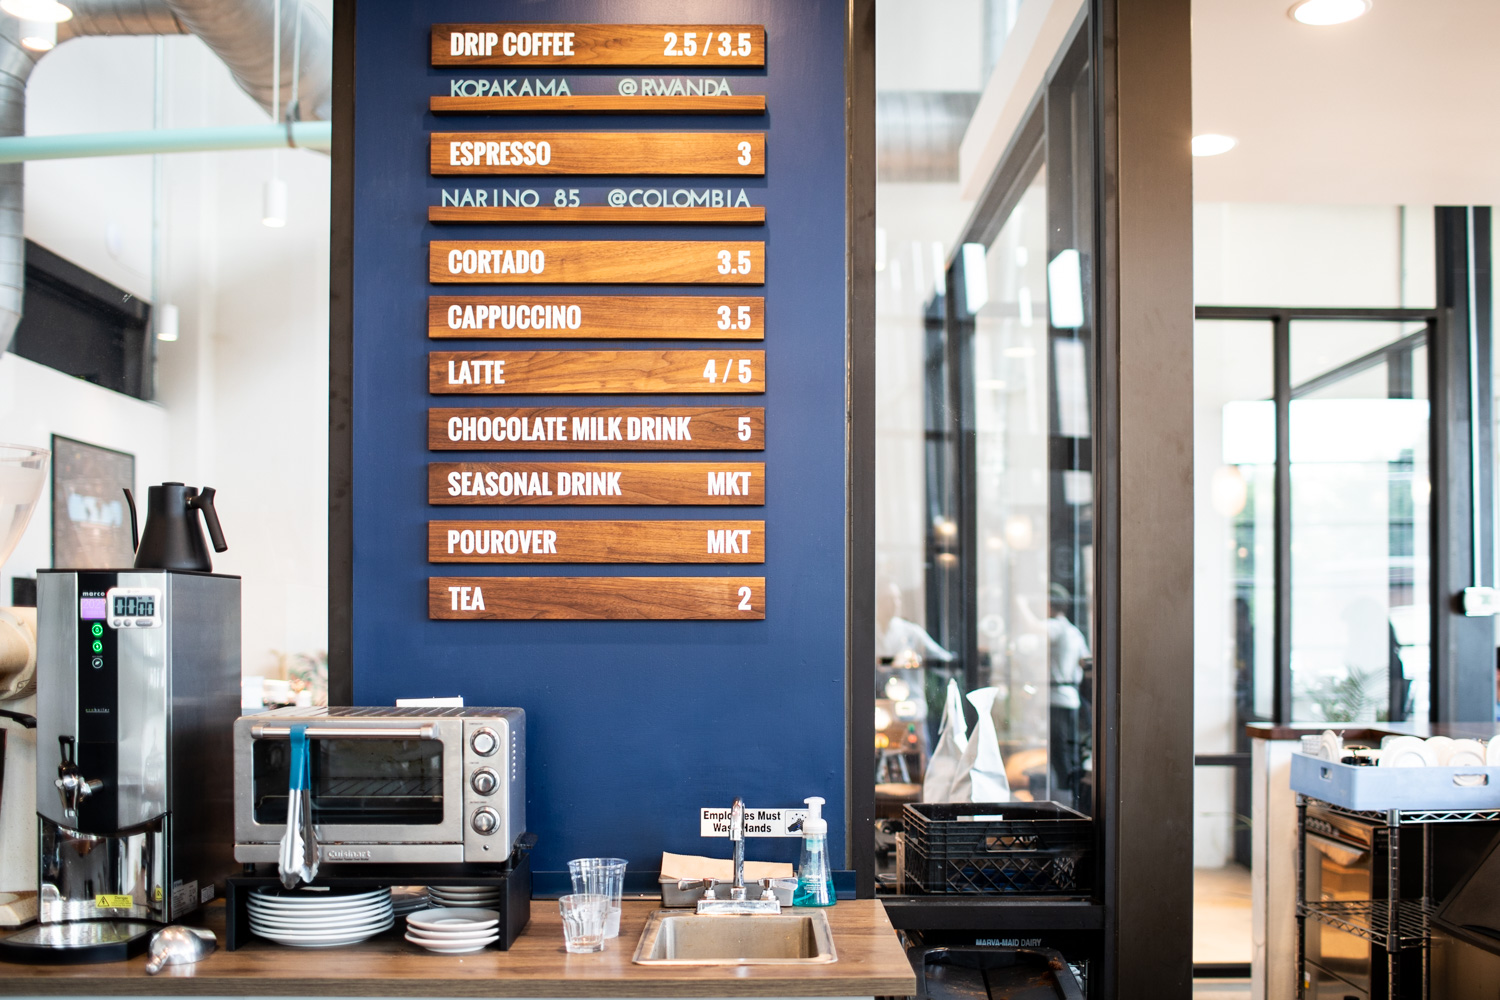 The coffee (and tea) menu at East Pole Coffee Company.